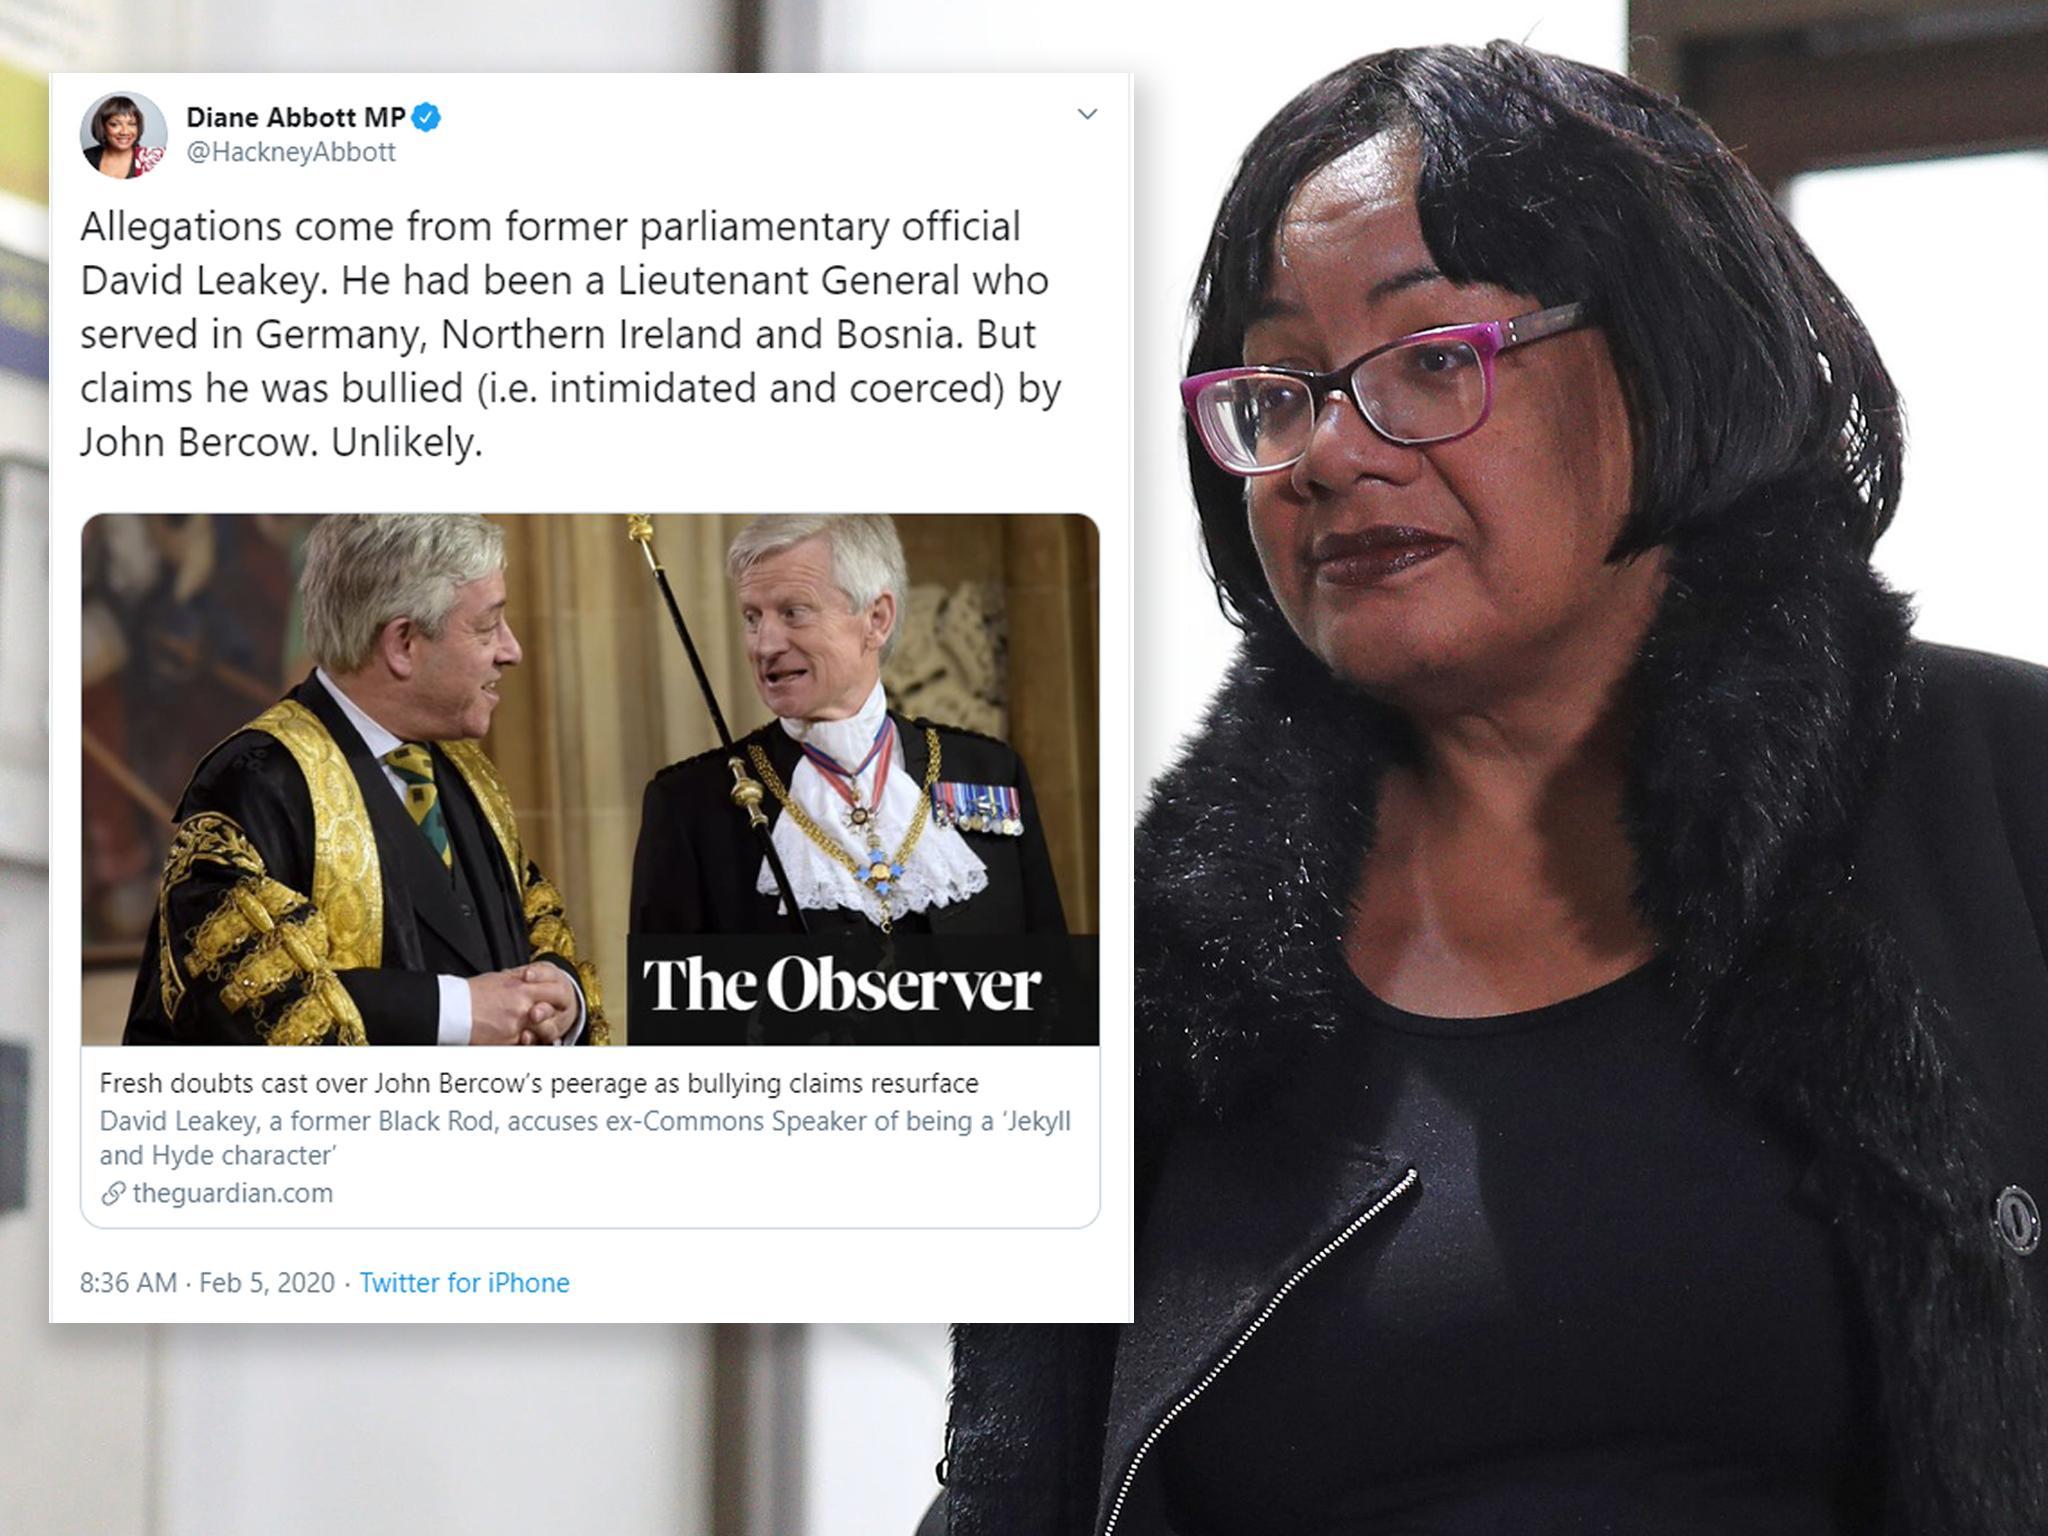 Diane Abbott's ridiculous claim that strong men can't be bullied isn't just wrong – it's disappointing